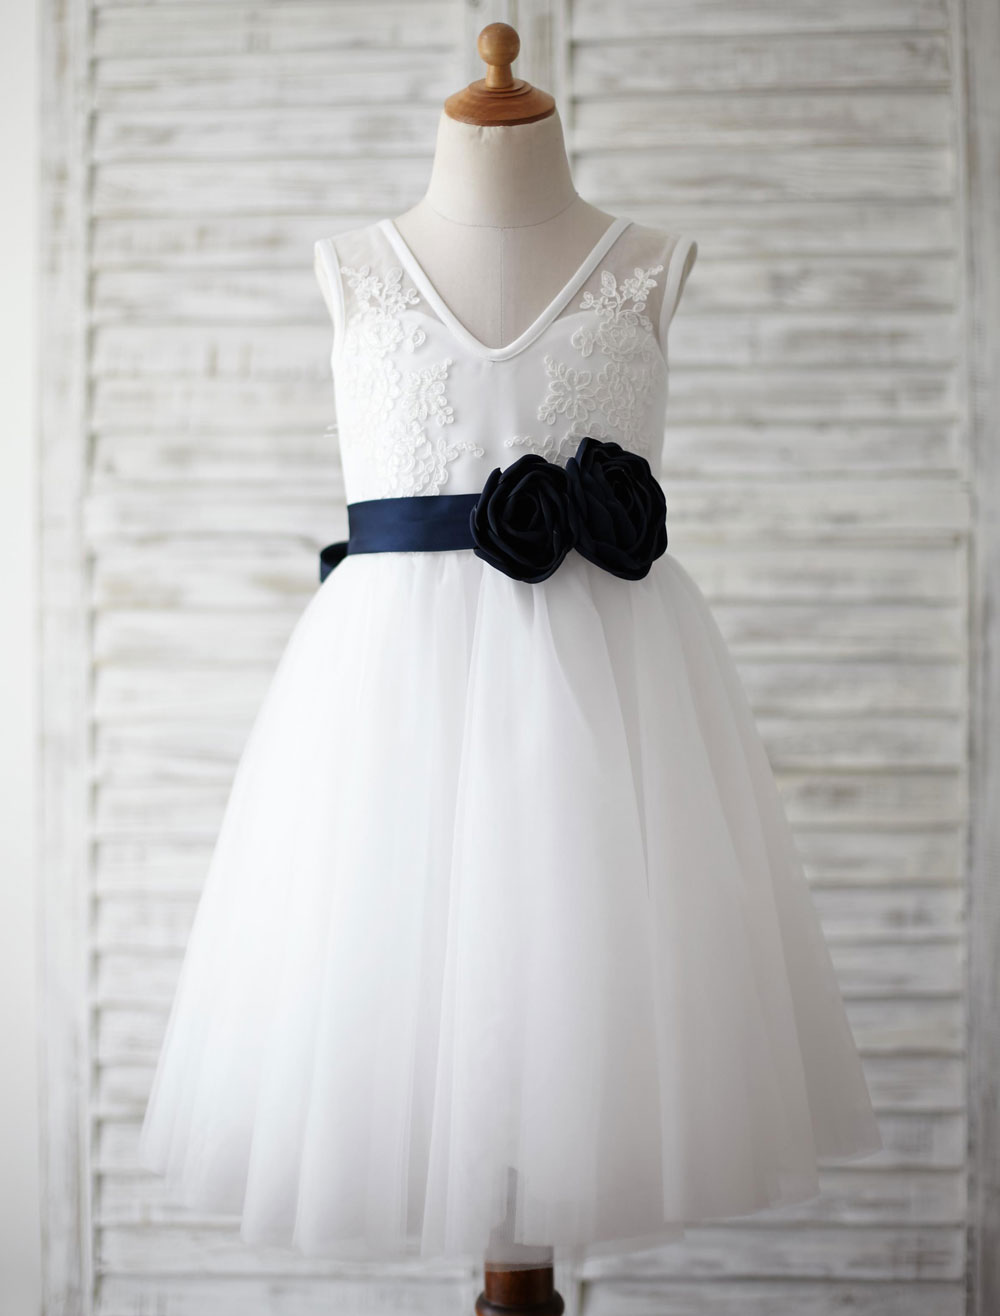 Buy Tulle Flower Girl Dress V Back Lace Toddler's Pageant Dress Knee Length With Ribbon Flower Sash for $74.69 in Milanoo store